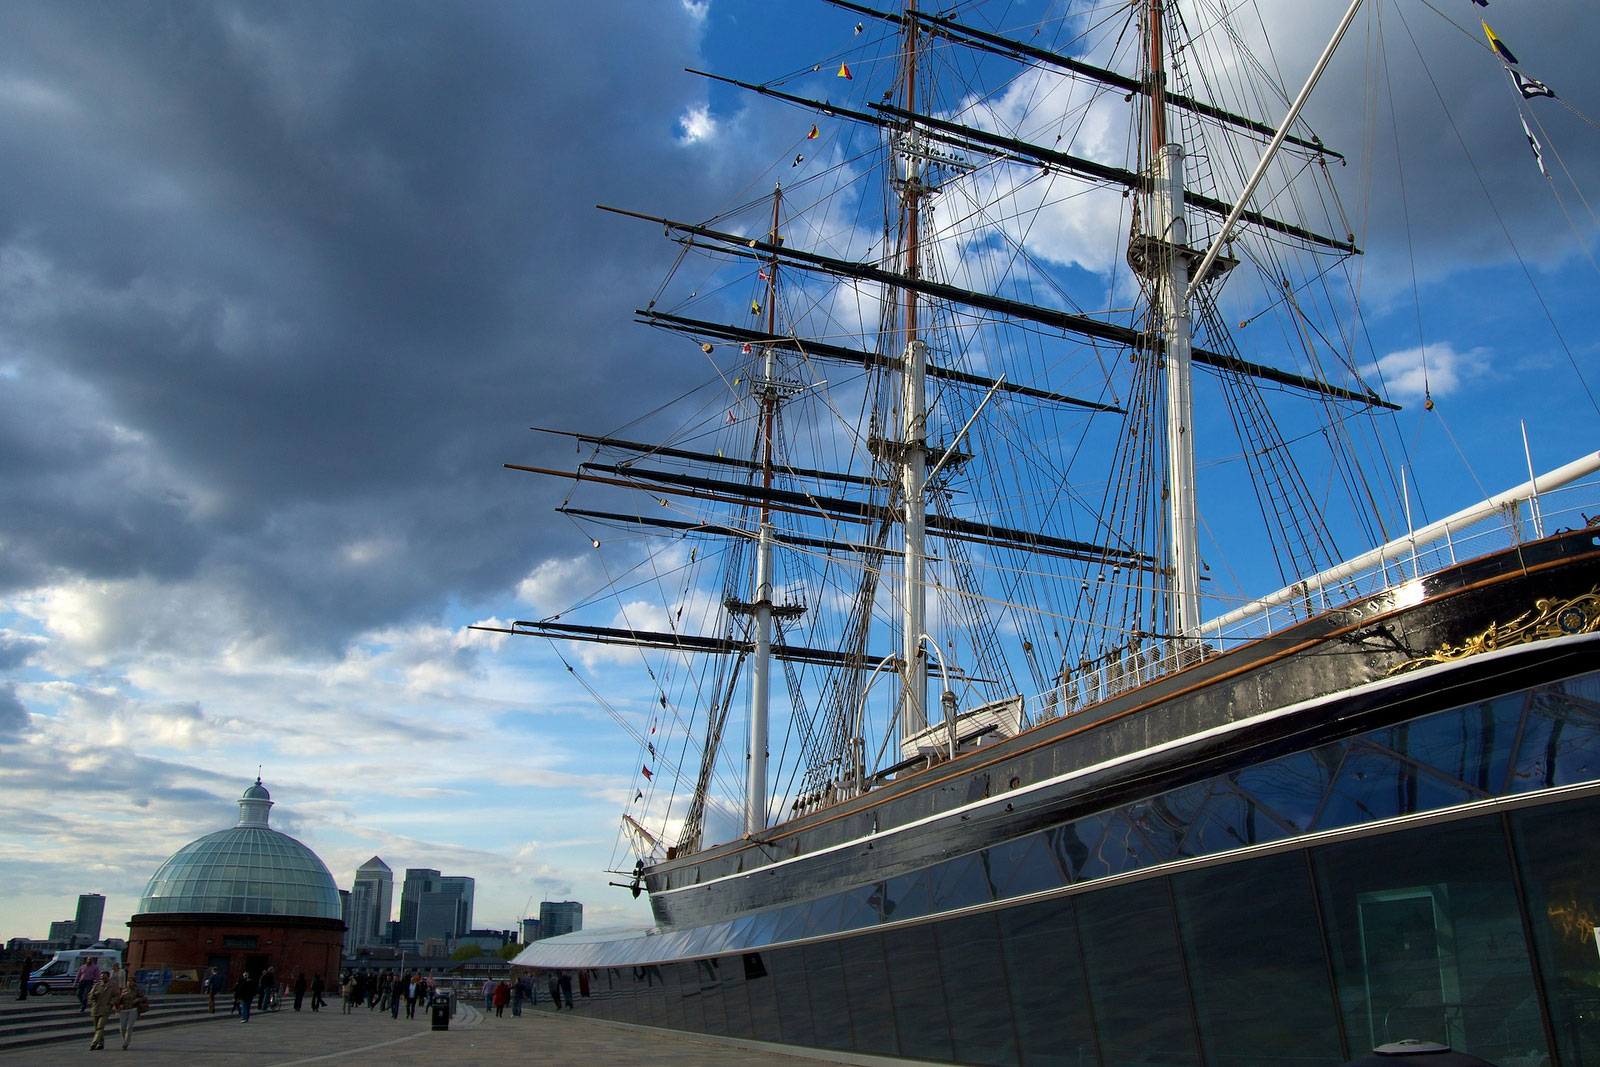 The Cutty Sark with kids